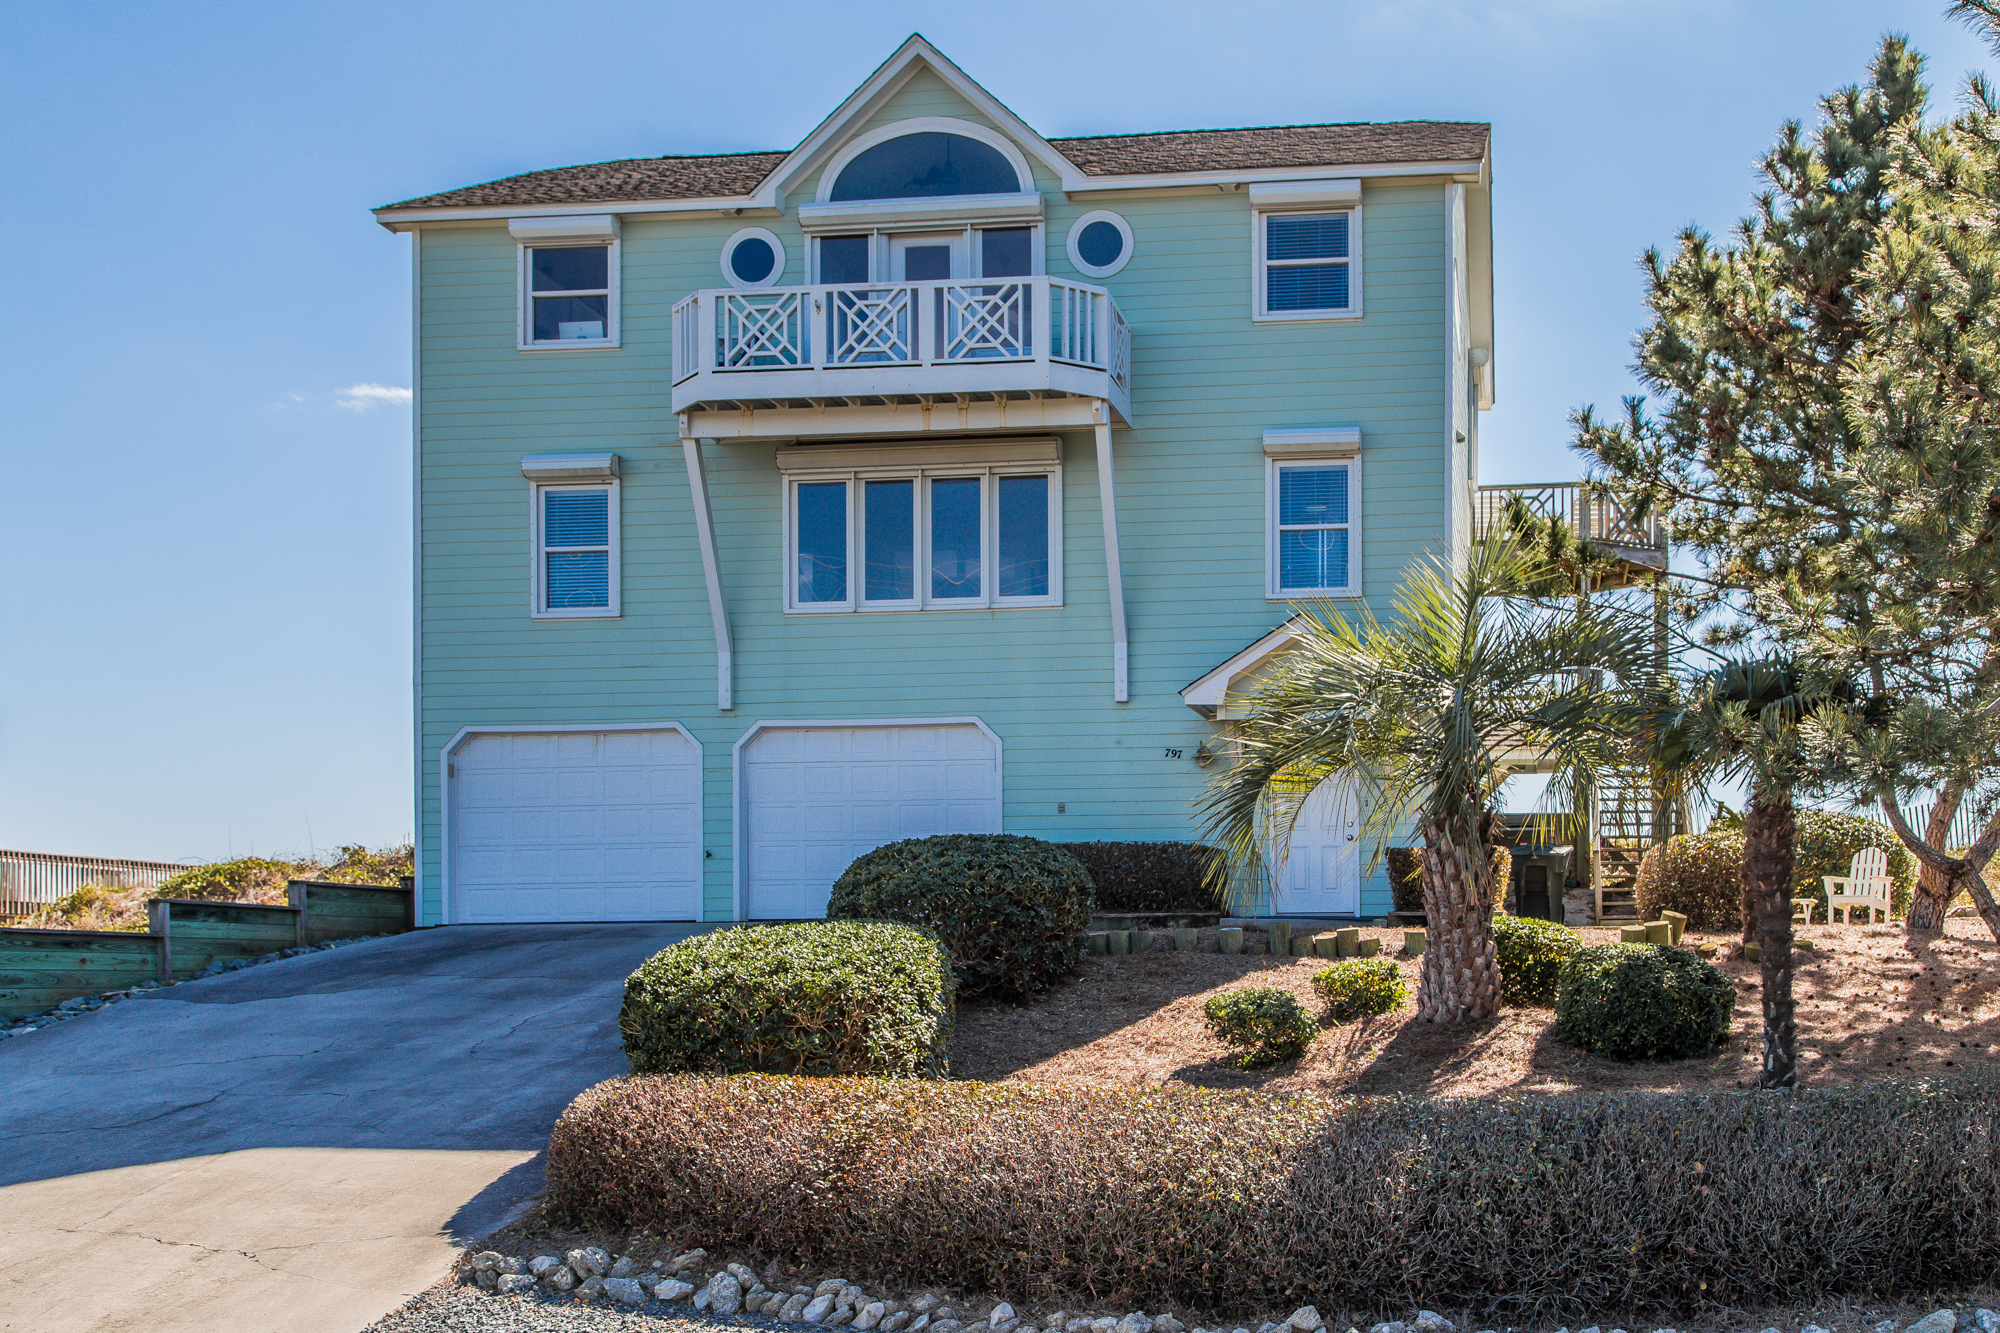 Single Family Home for Sale at Oceanfront Serenity 797 N. Anderson Blvd. Topsail Beach, North Carolina, 28445 United States